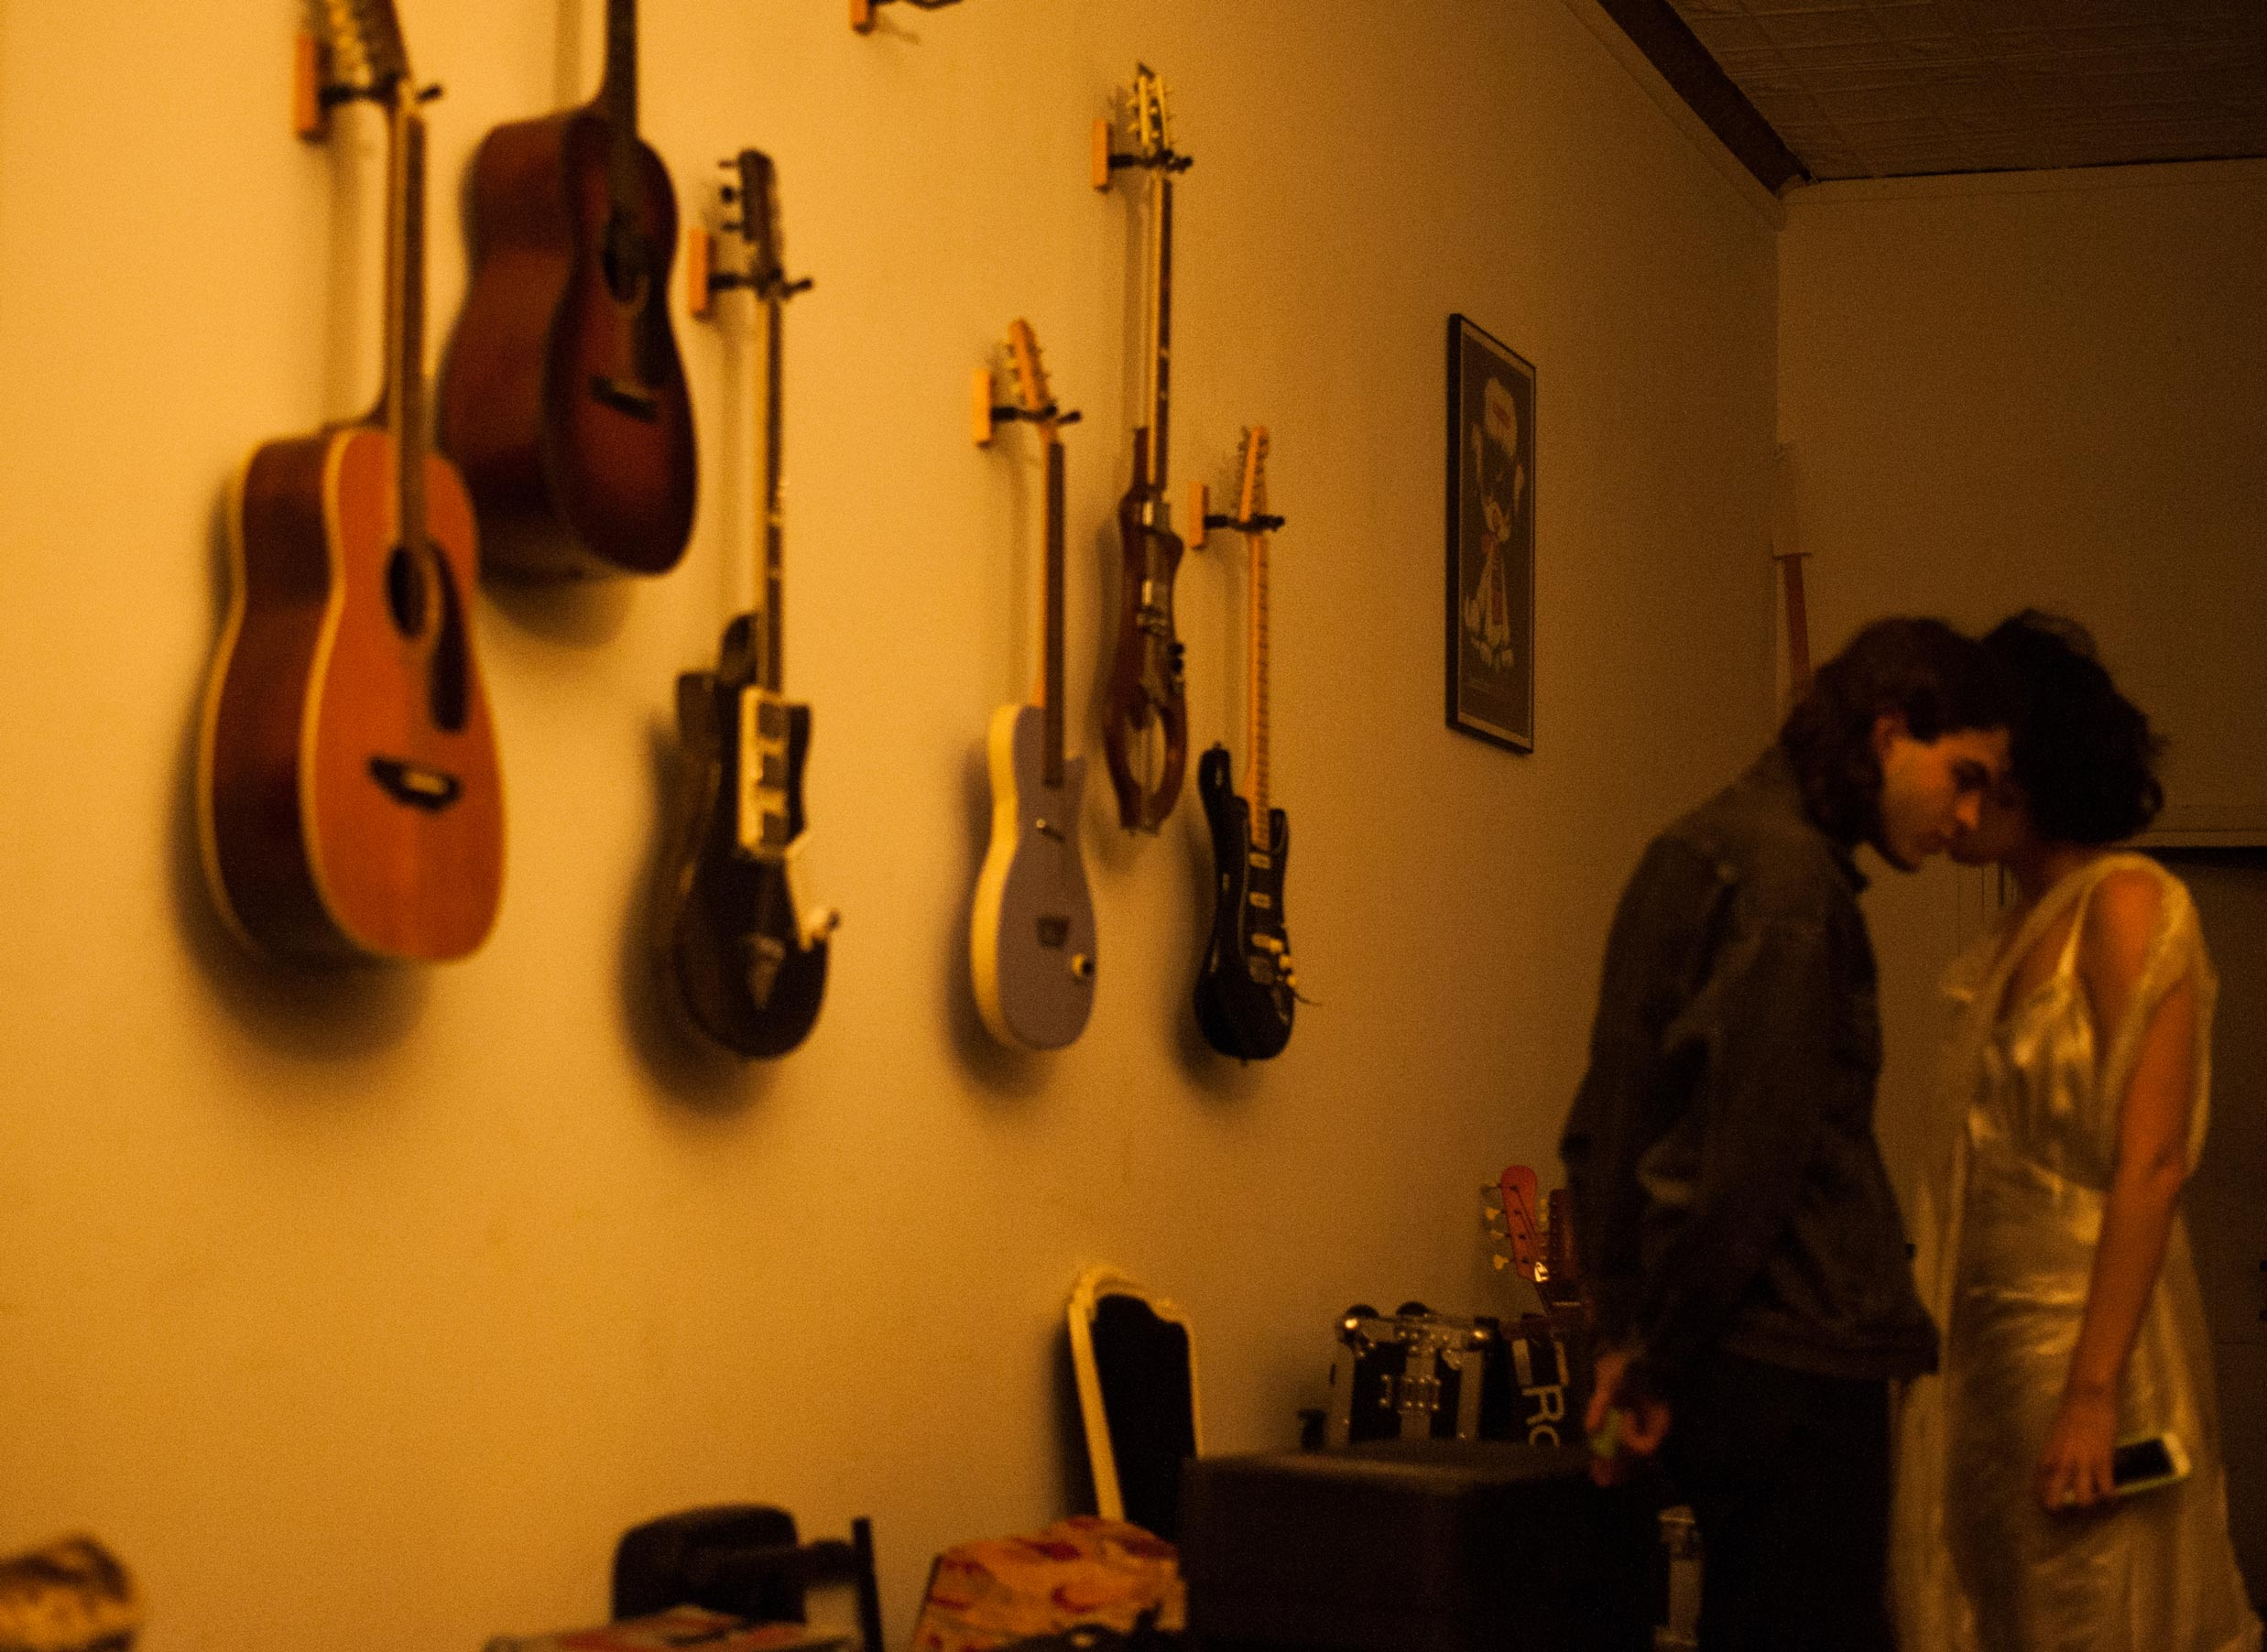 Guitars adorn the wall of Sean Lennon's New York apartment.